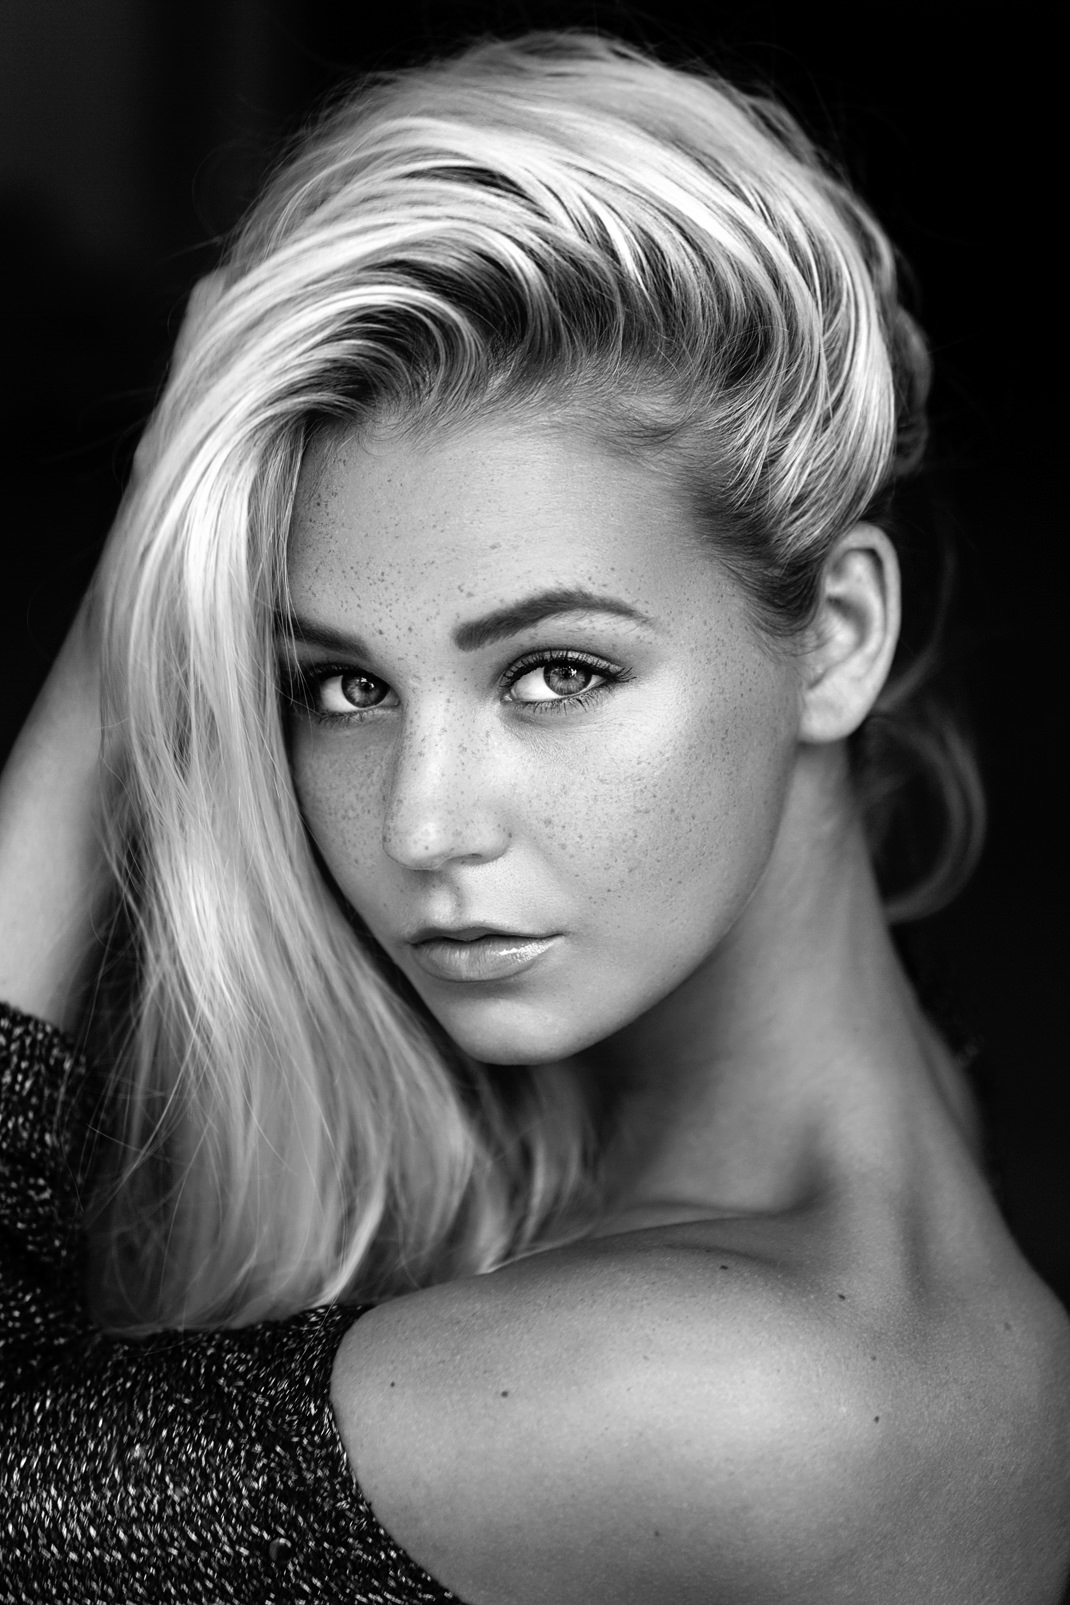 Portrait - Markus Hertzsch - B&W - Girl - Model - Bildlook - Face - Pose - Art - Hair - Eyes - Lorena - Blonde